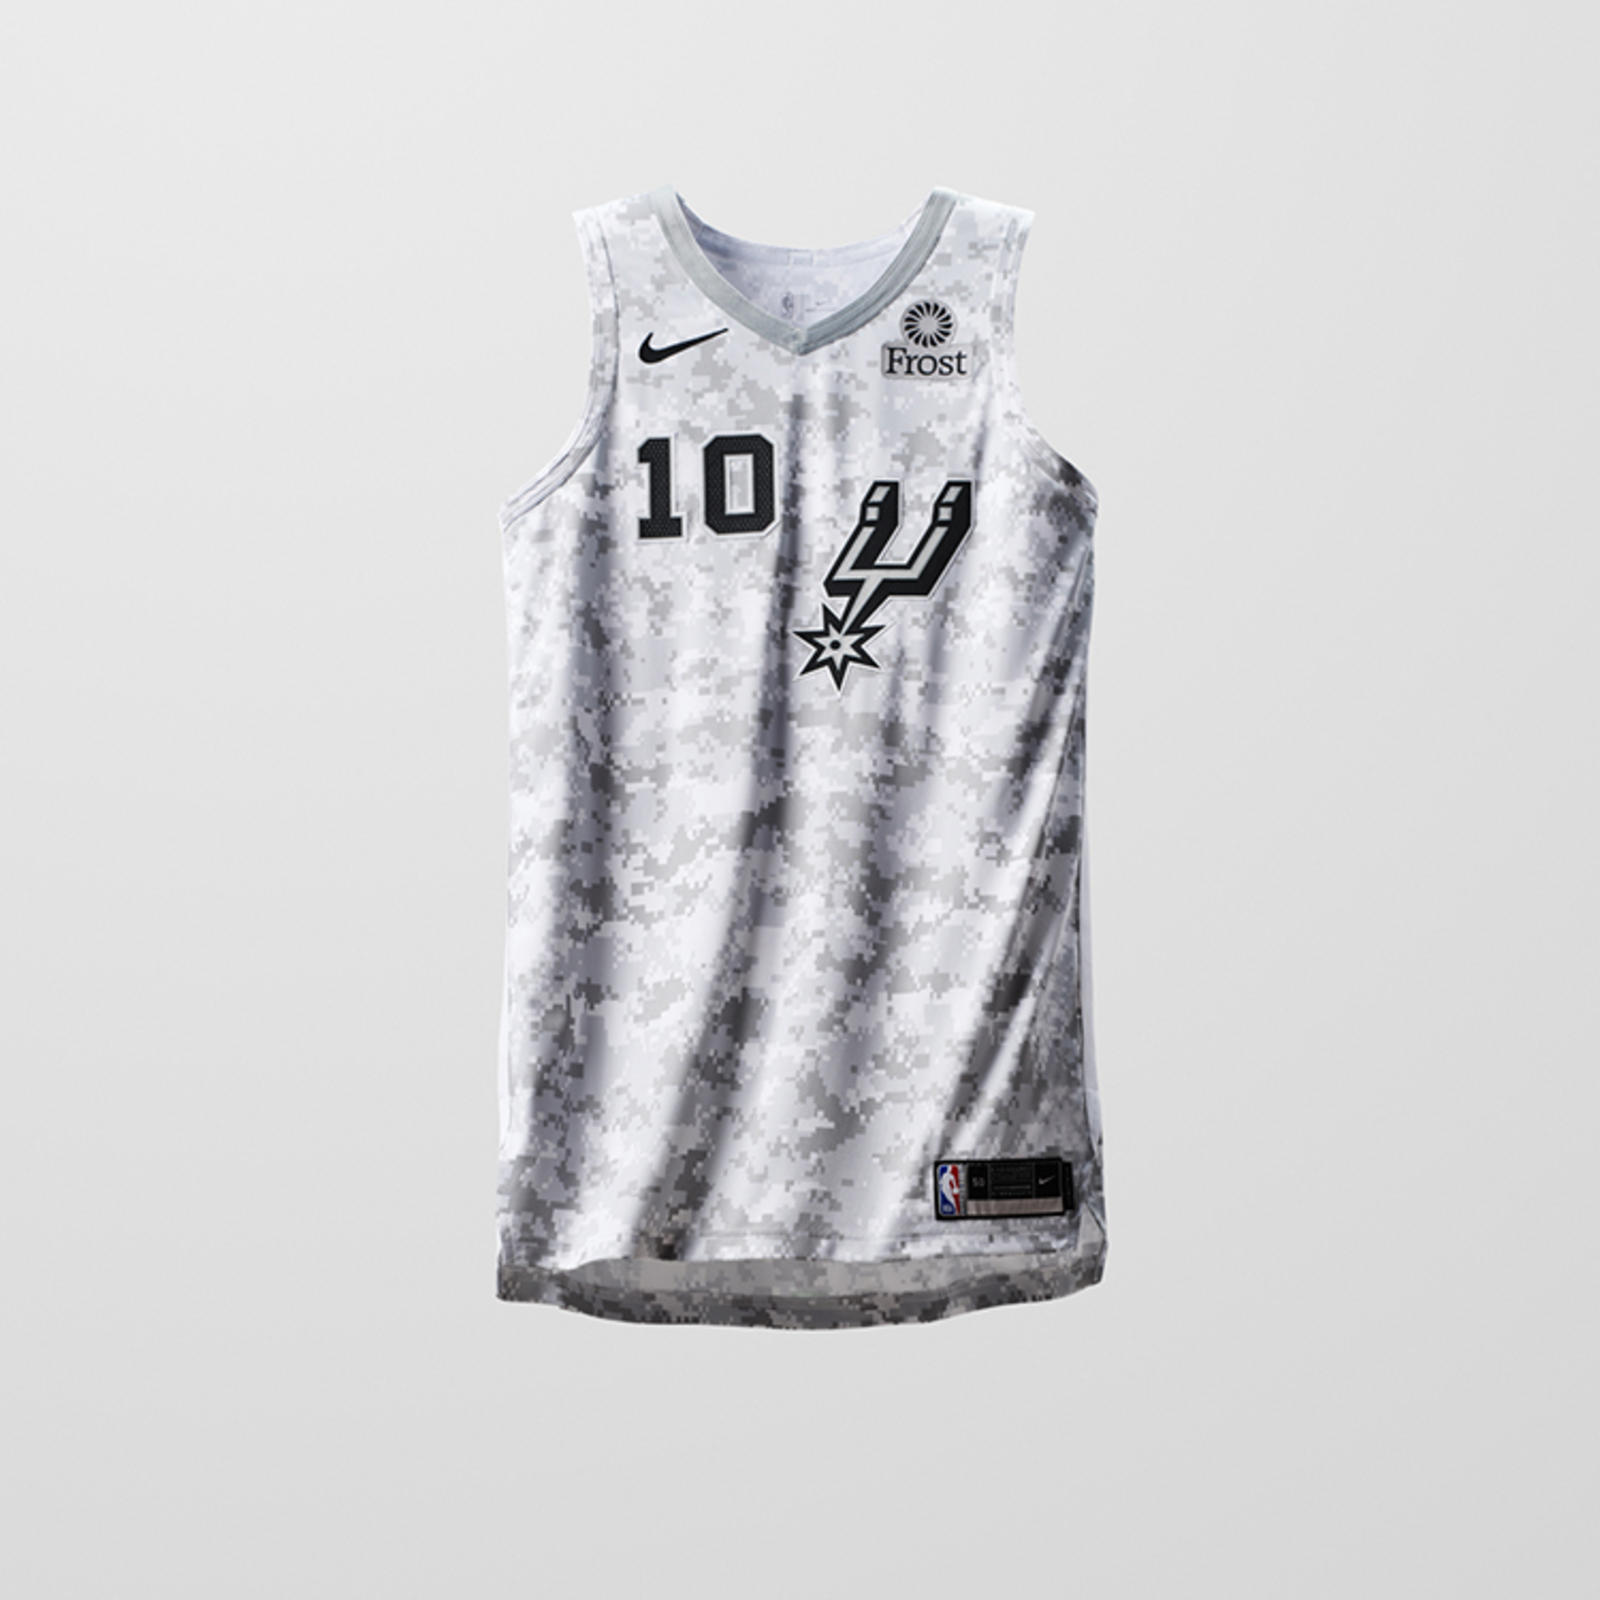 Introducing the Nike x NBA EARNED Edition Uniforms 6. SAN ANTONIO SPURS 1d059bc26